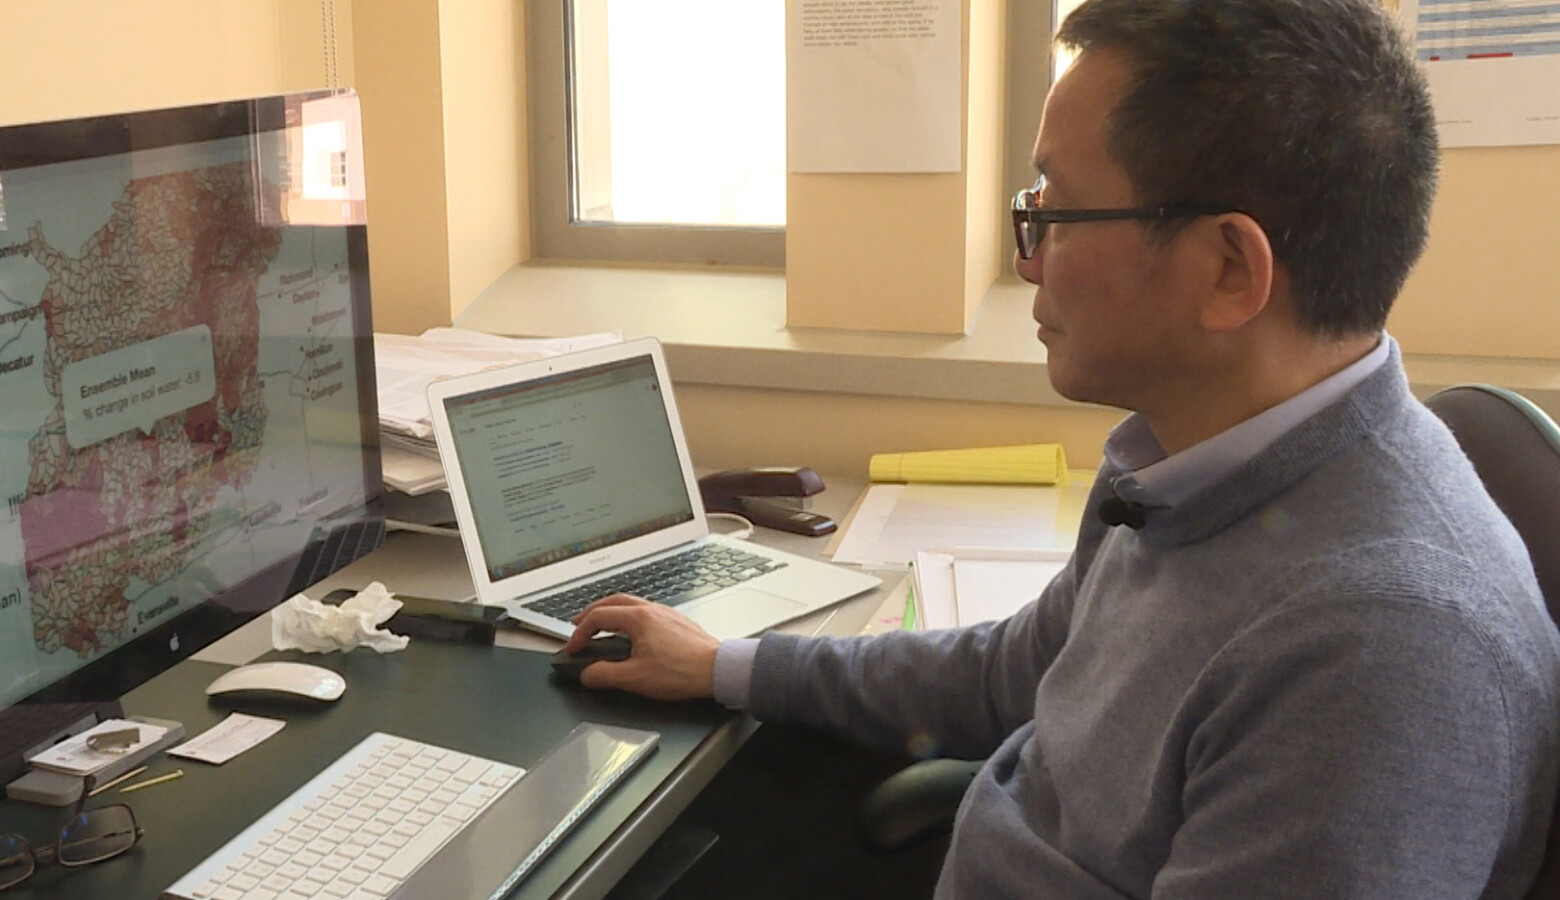 Indiana University Professor Chen Zu shows how people can use the mapping tool to find out how much water might be lost in their community in the future. (Rebecca Thiele/IPB News)